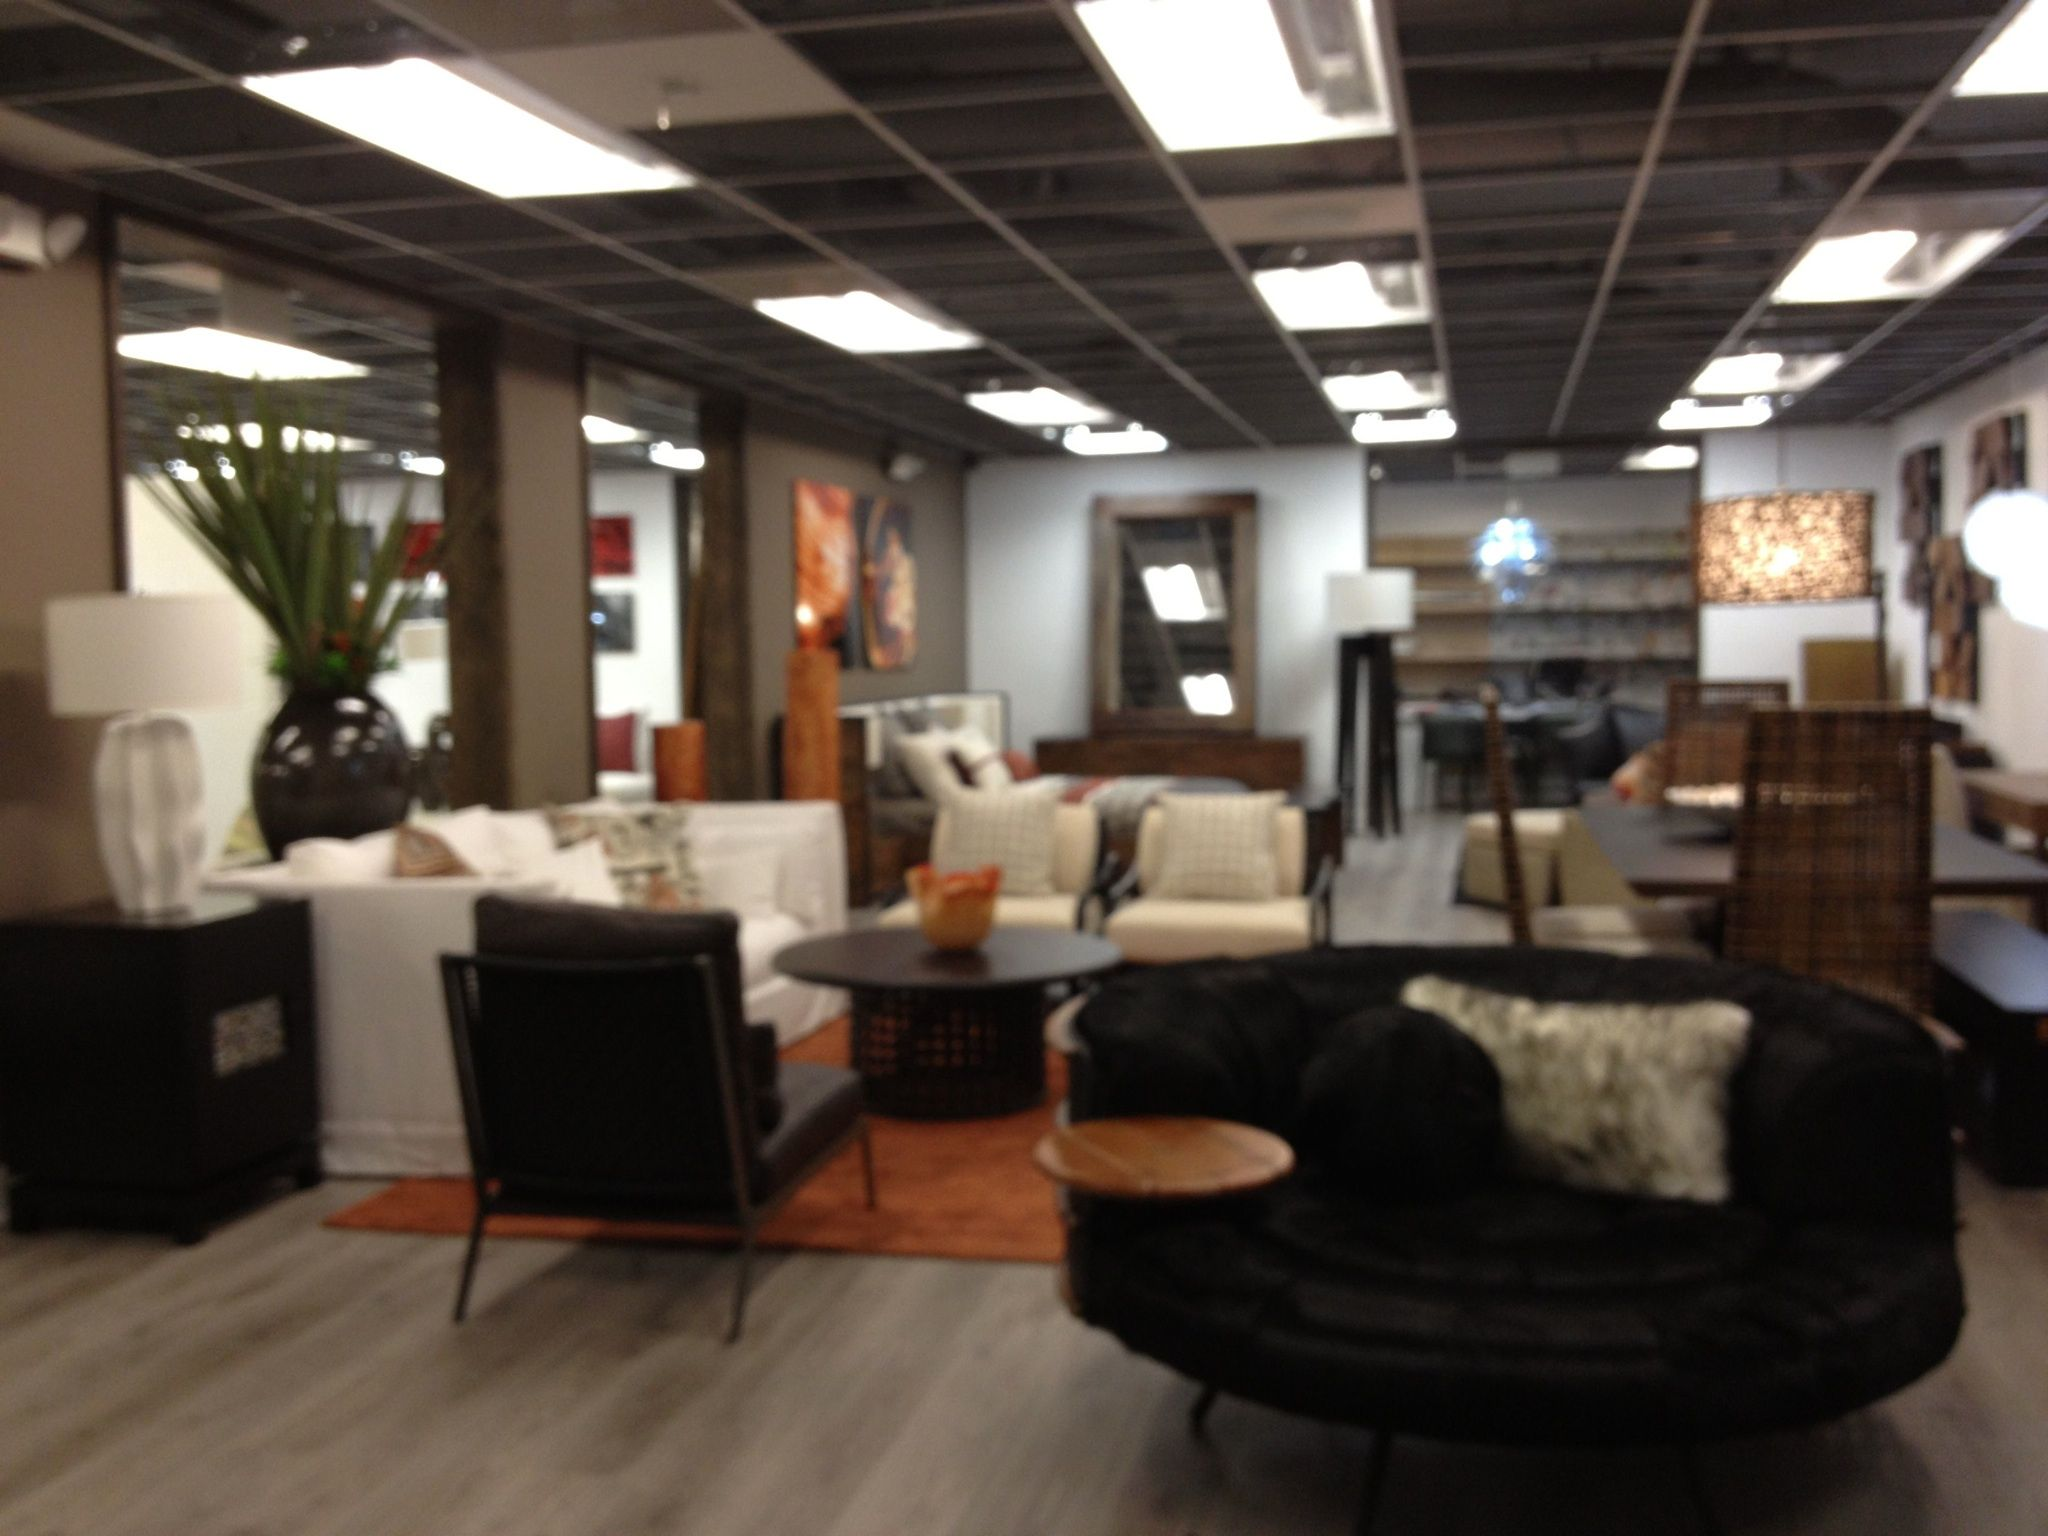 Just Designed this look for Elementos furniture store in Midtown Miami, just the right blend of Contemporary and Warmth, very Miami!!!